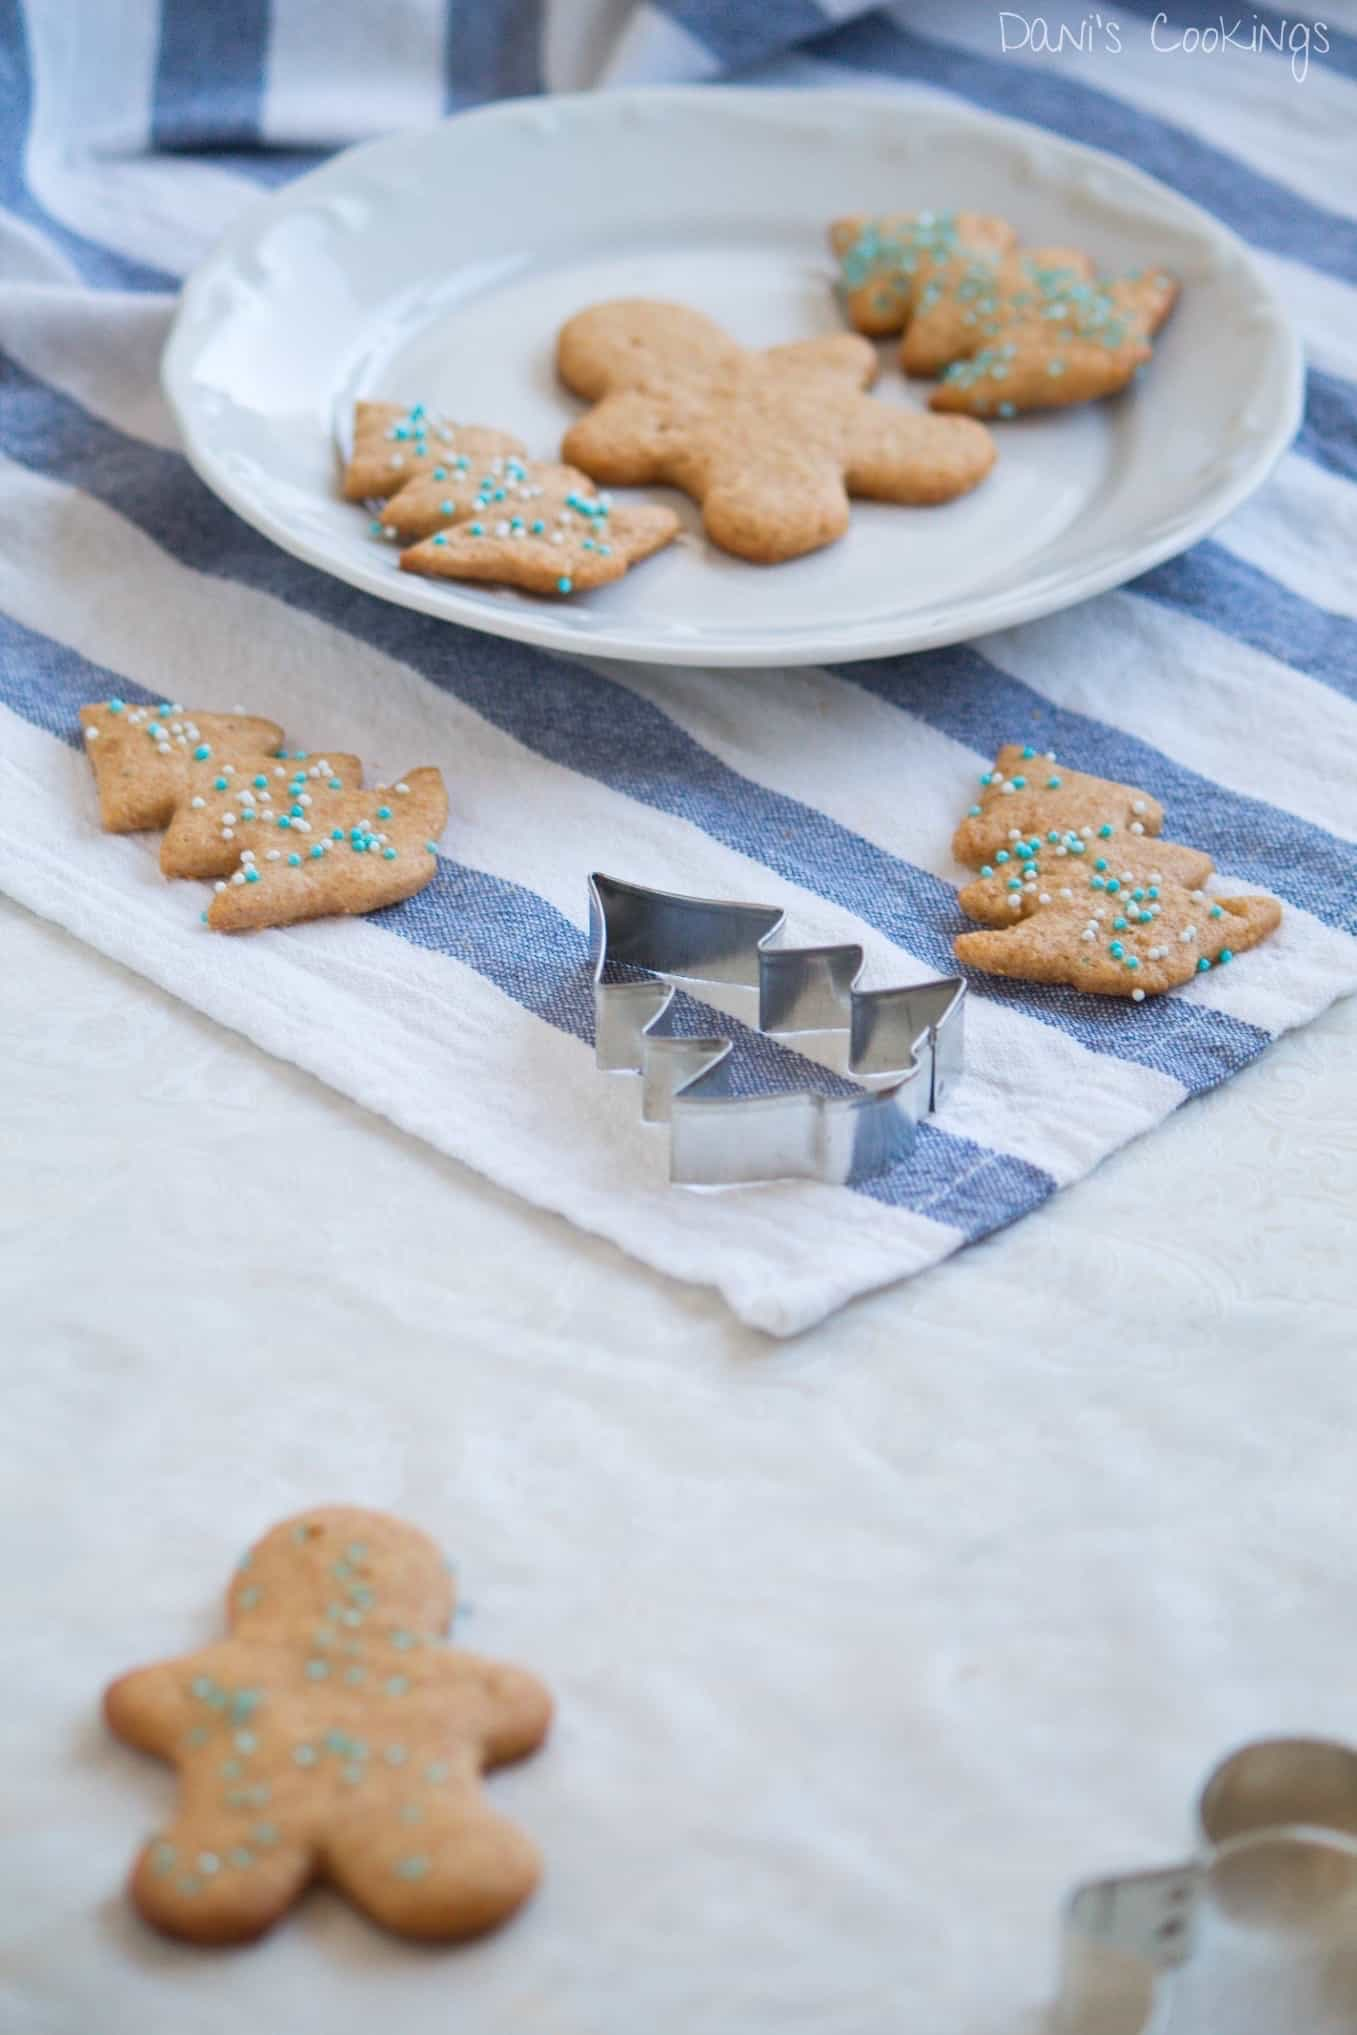 cookies on a plate and others aside, different shapes